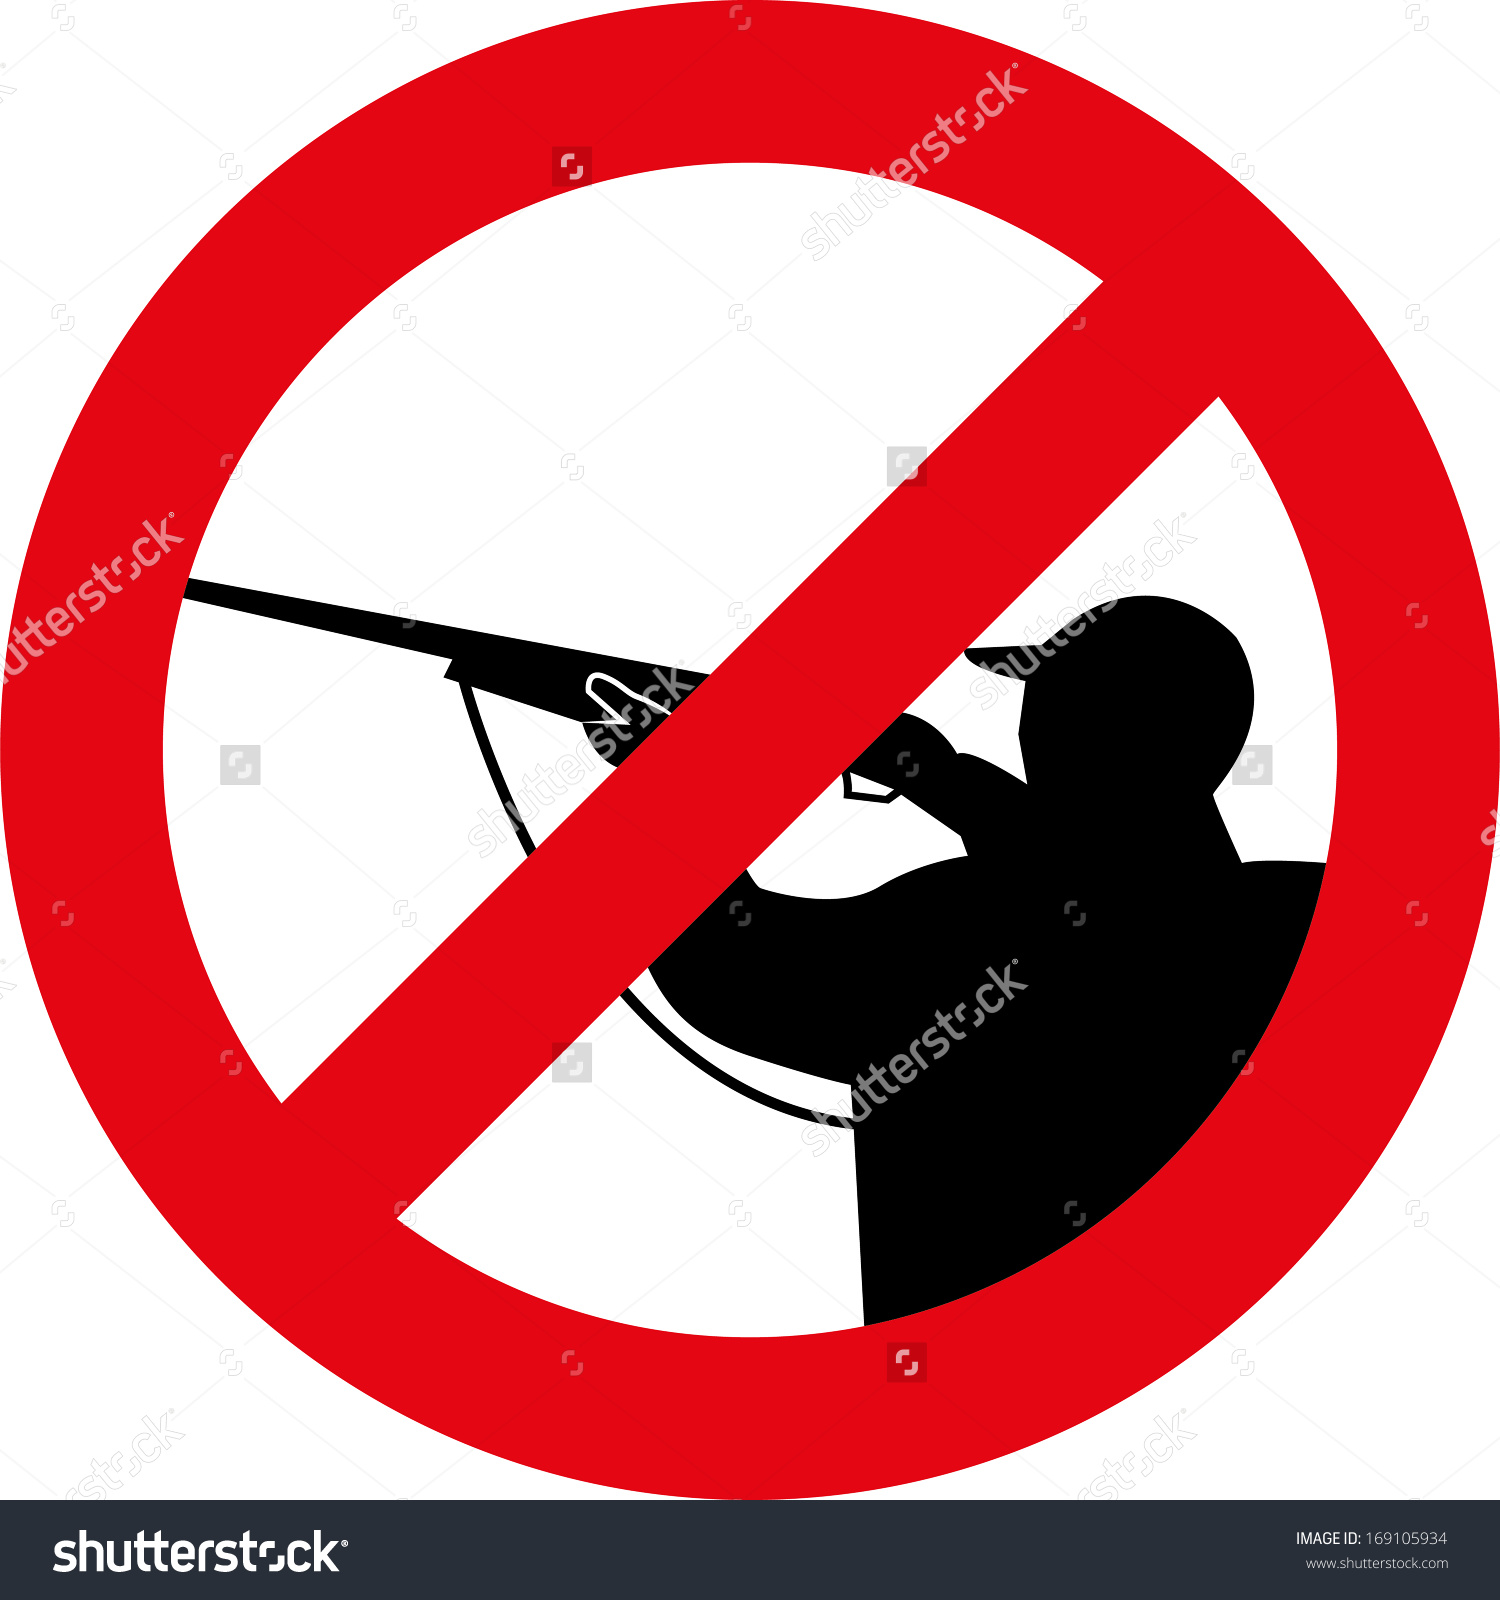 Stop Hunting Sign Stock Vector 169105934.